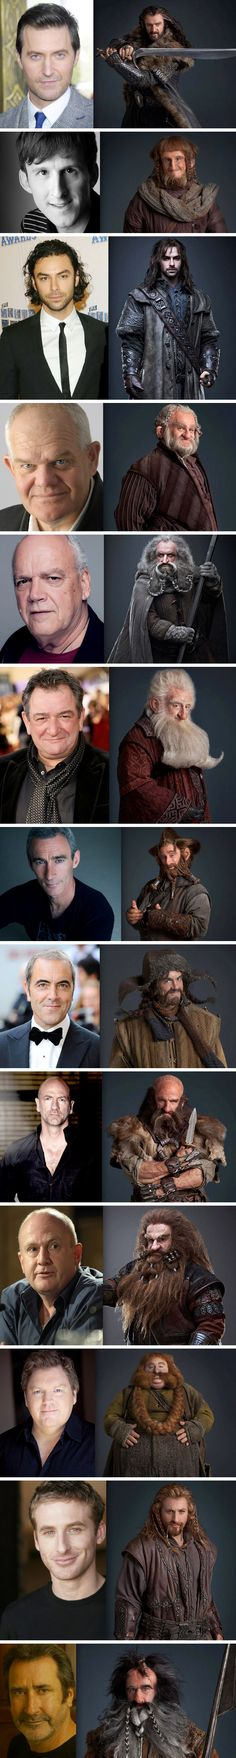 The Hobbit dwarves, in and out of make-up.